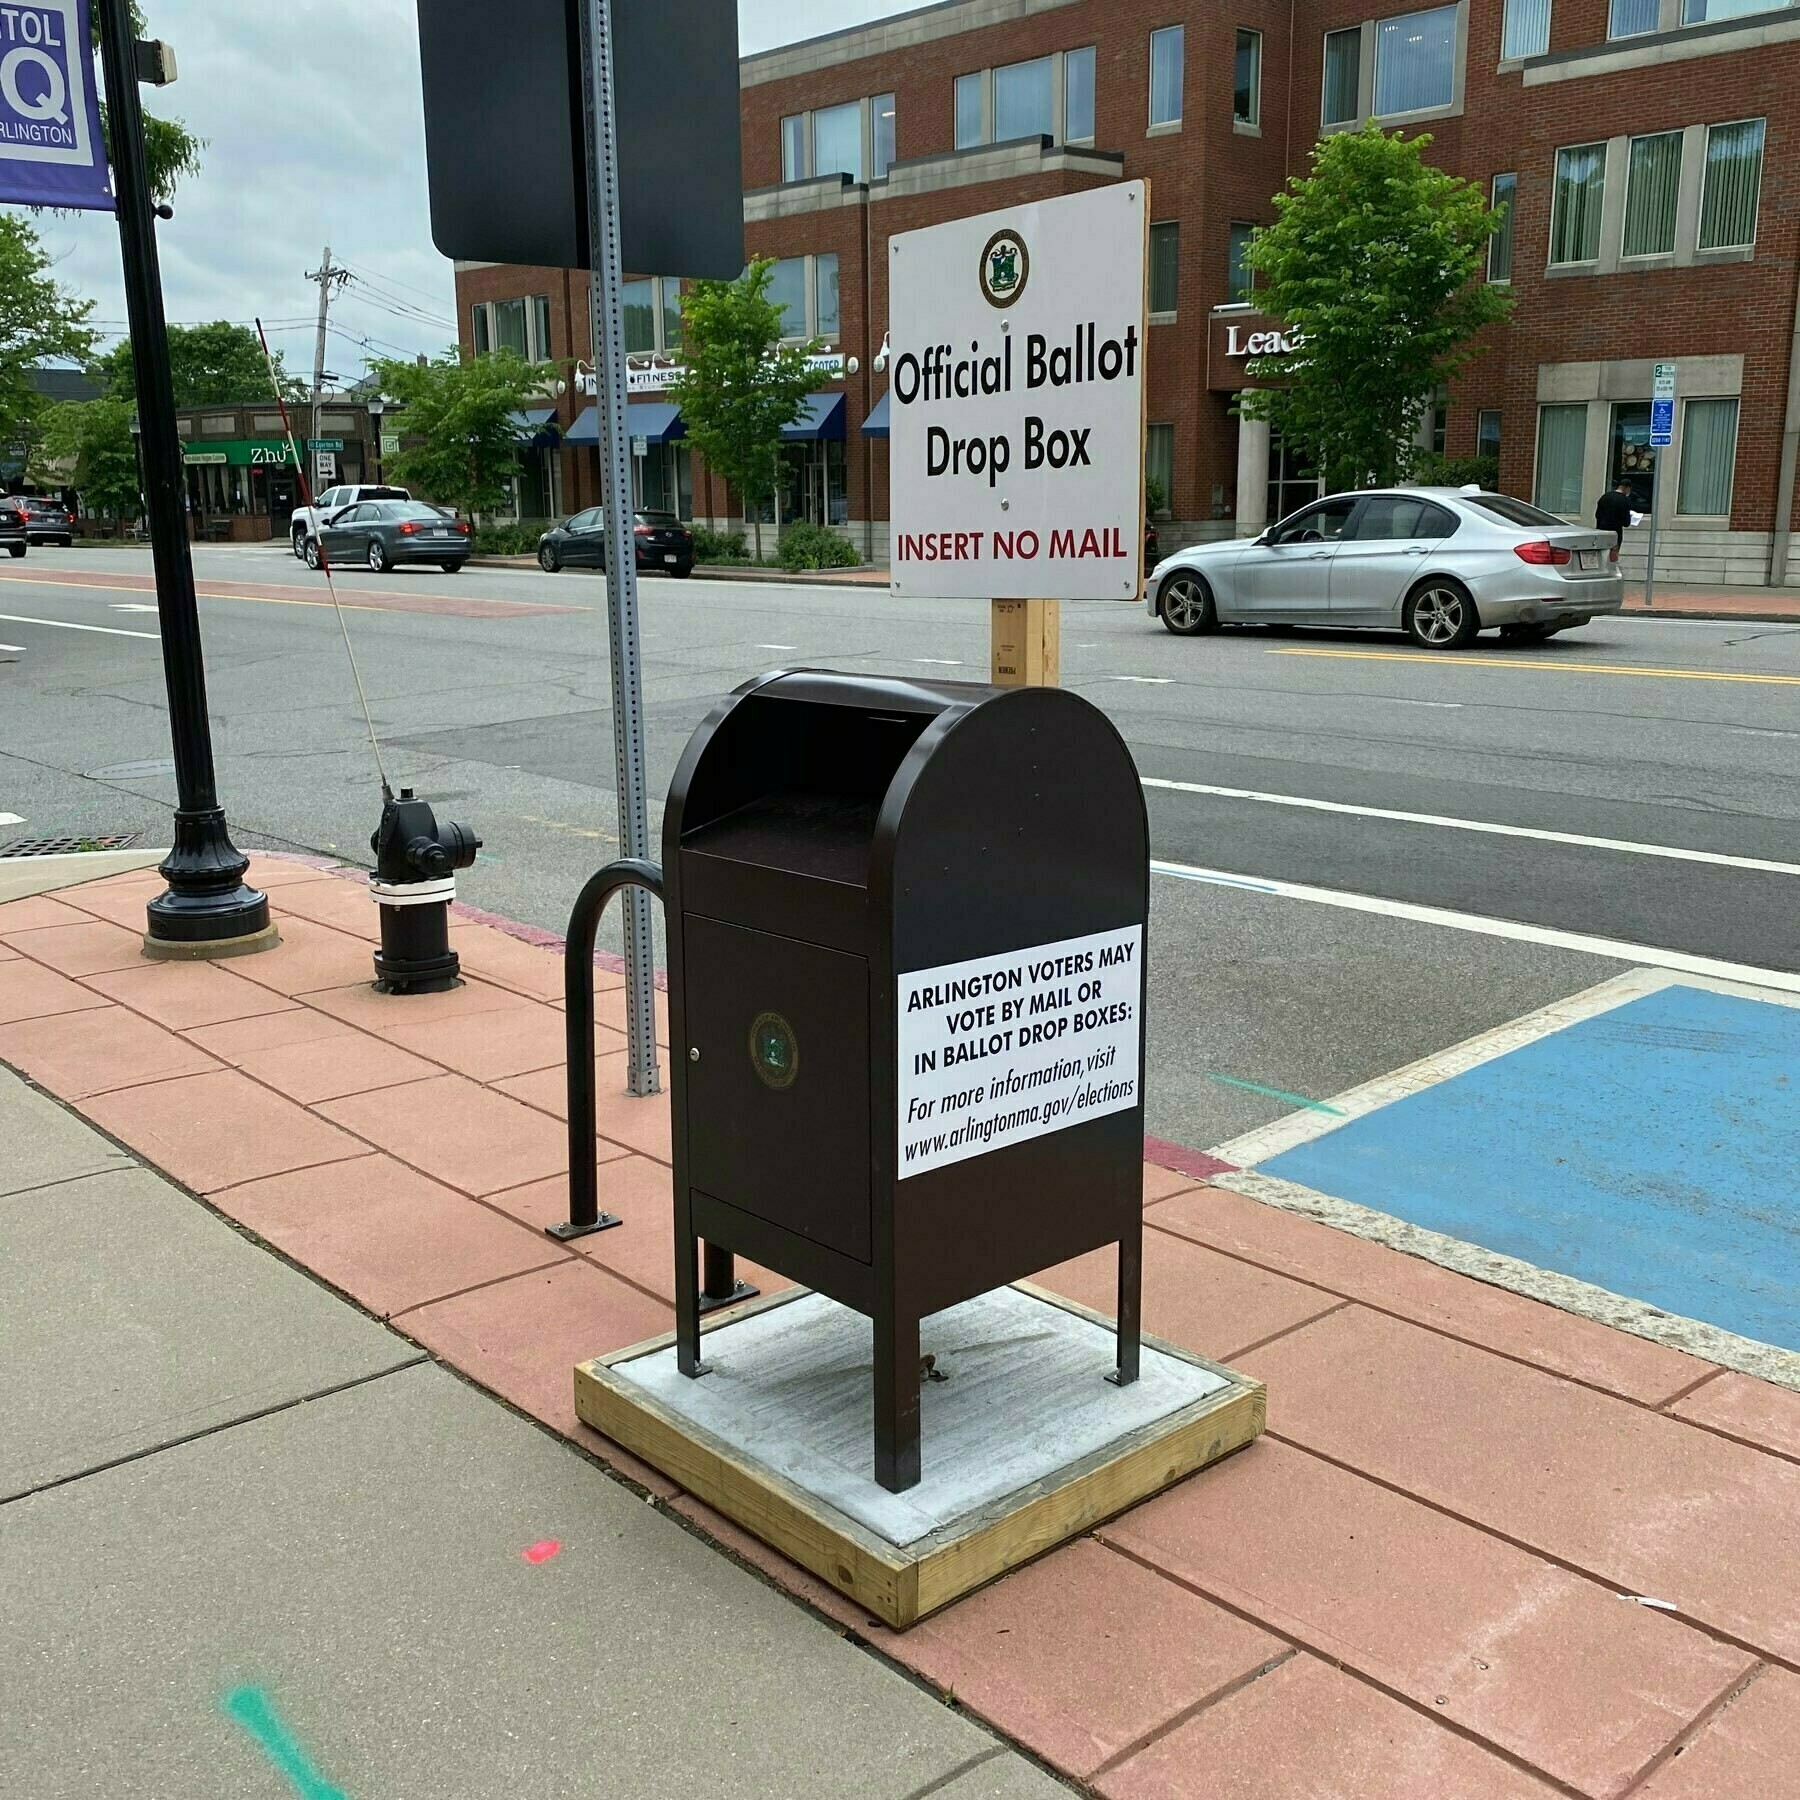 public drop box for official coting ballots